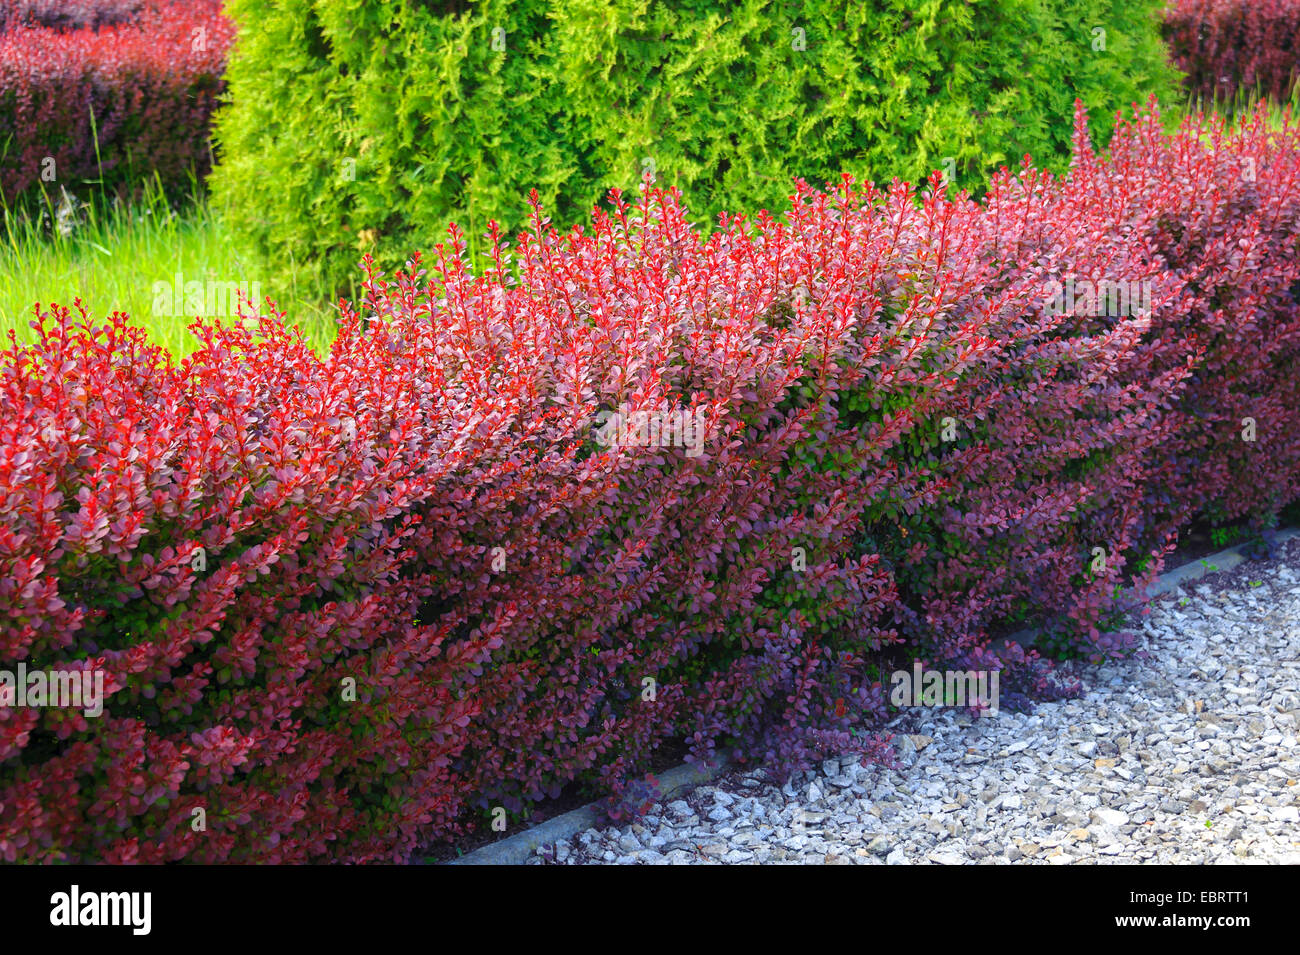 japanese barberry berberis thunbergii var atropurpurea berberis stock photo 76127073 alamy. Black Bedroom Furniture Sets. Home Design Ideas